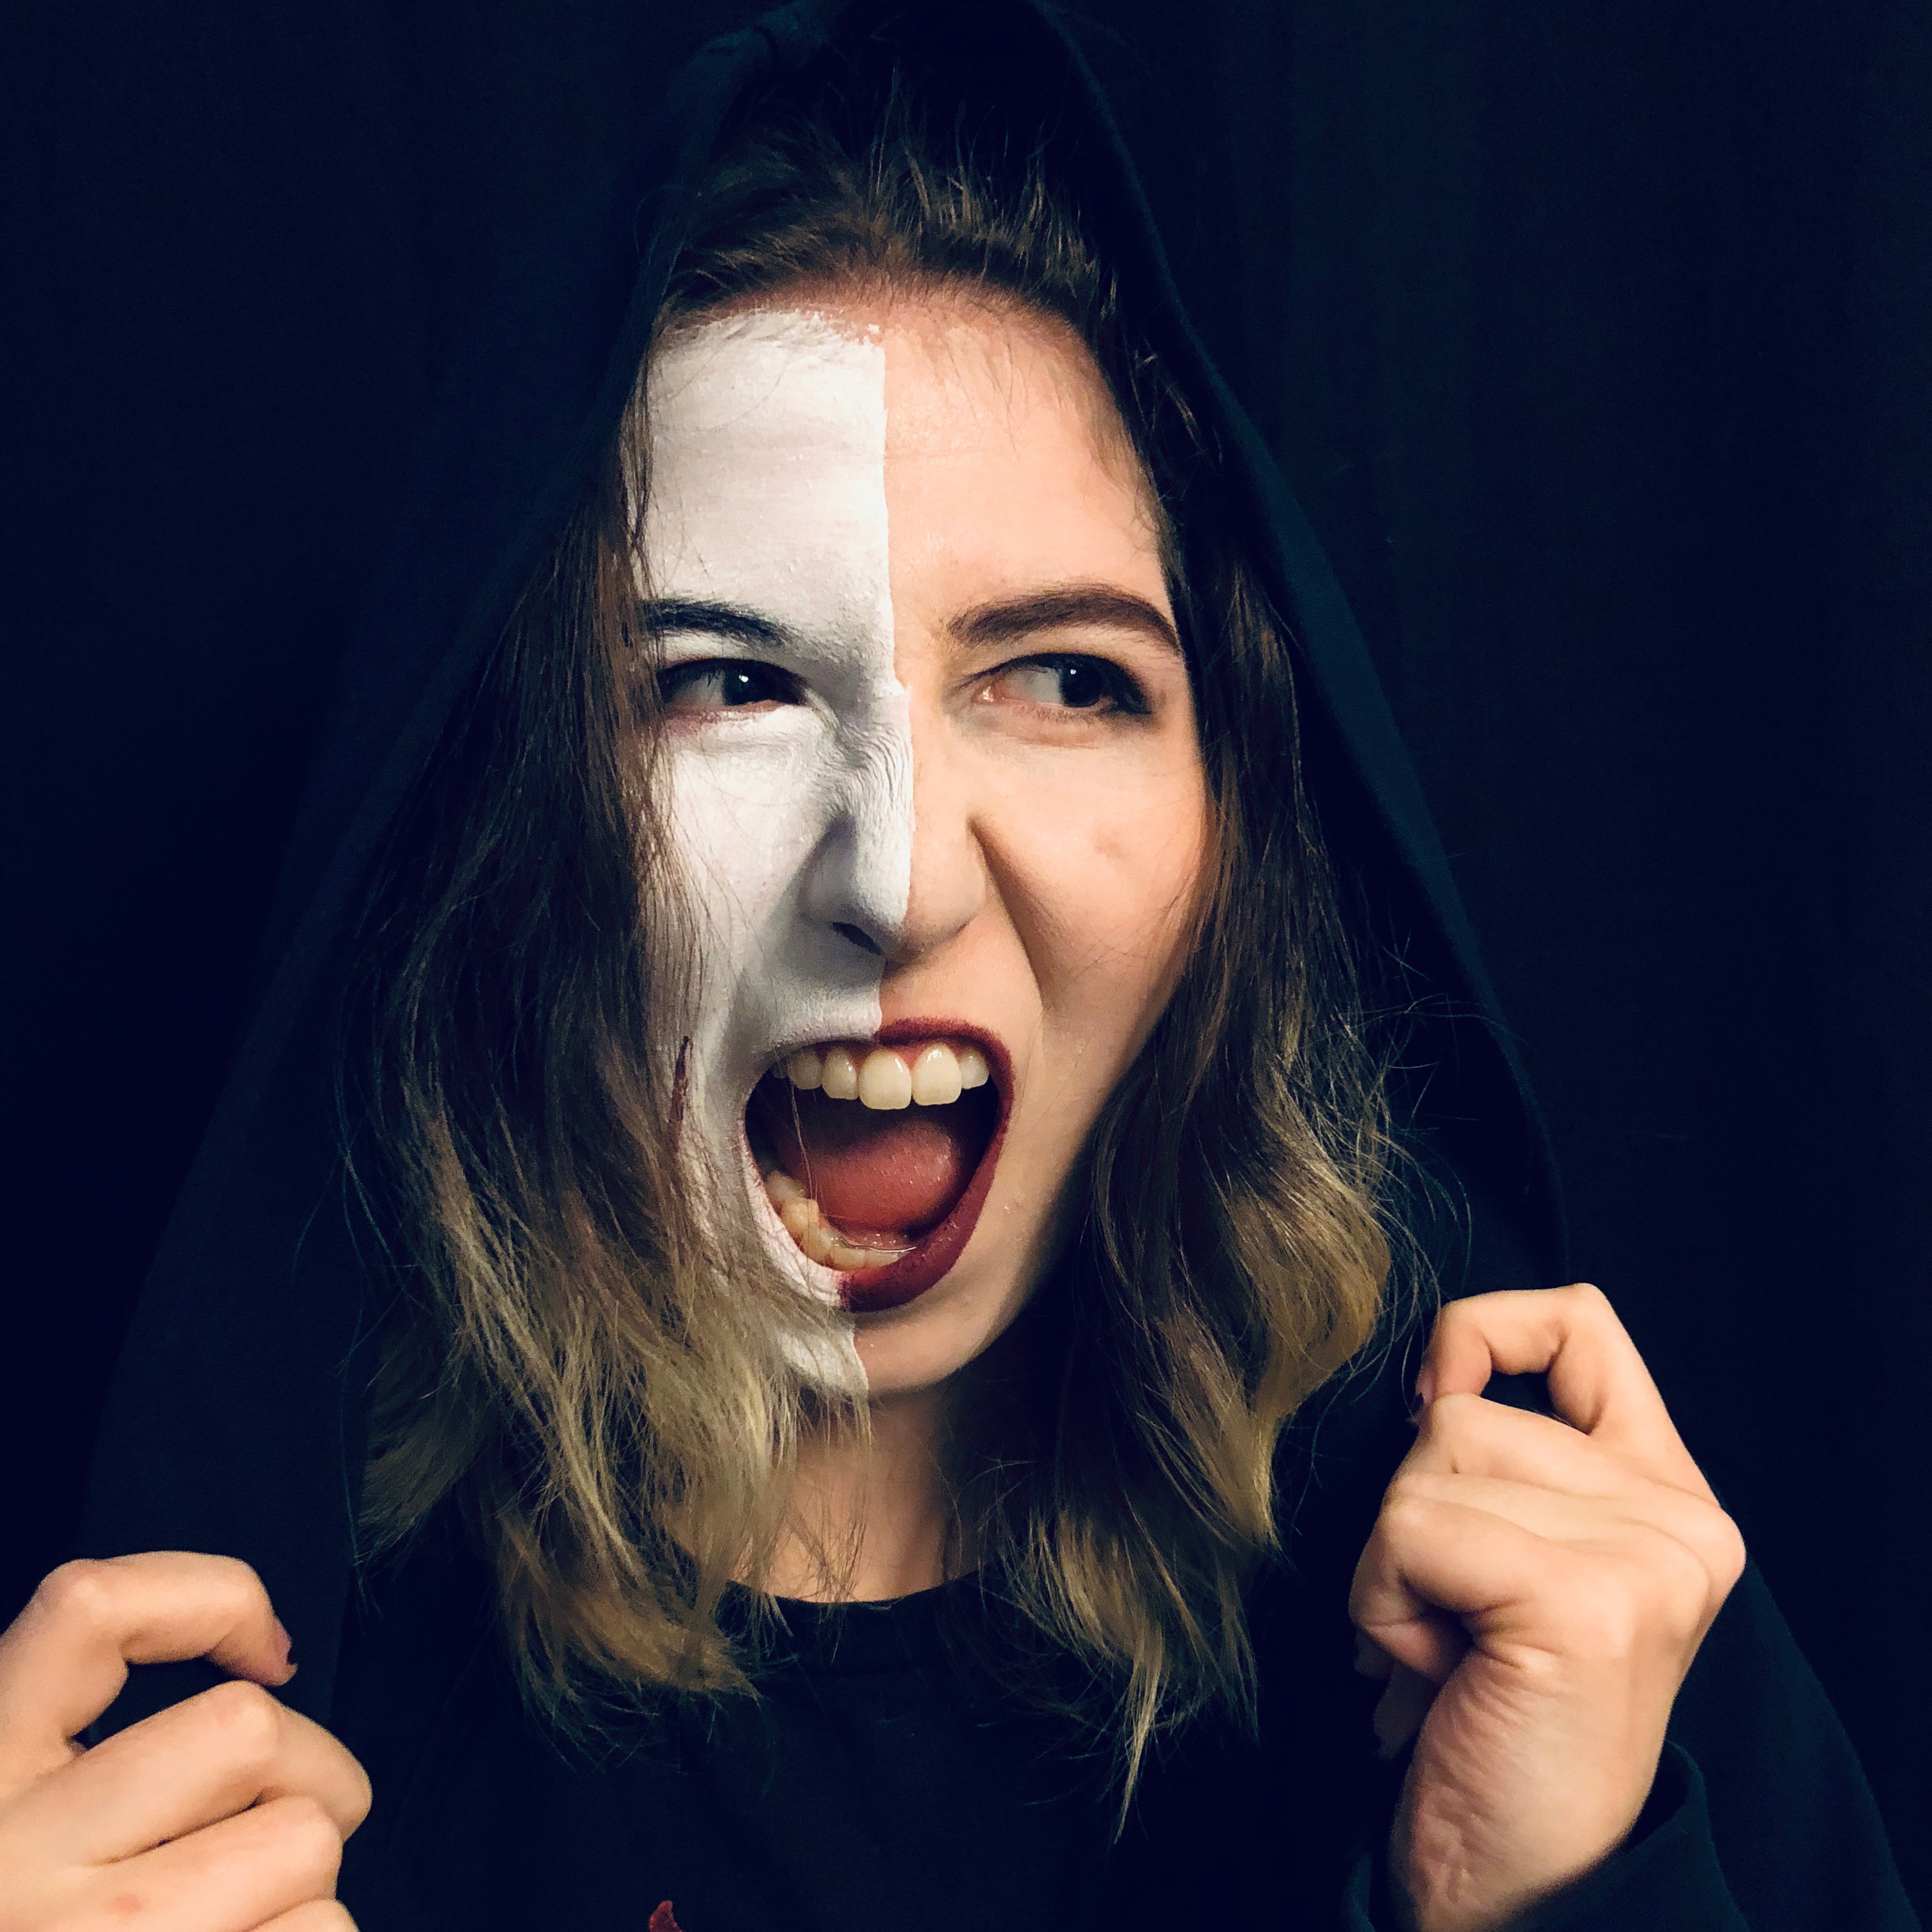 KaseyDidWhat appears to be screaming as she holds a black hood over he head, white facepaint on the right sisde of her face. Her shirt is black as well as the background, making it a very moody and dramatic shot.